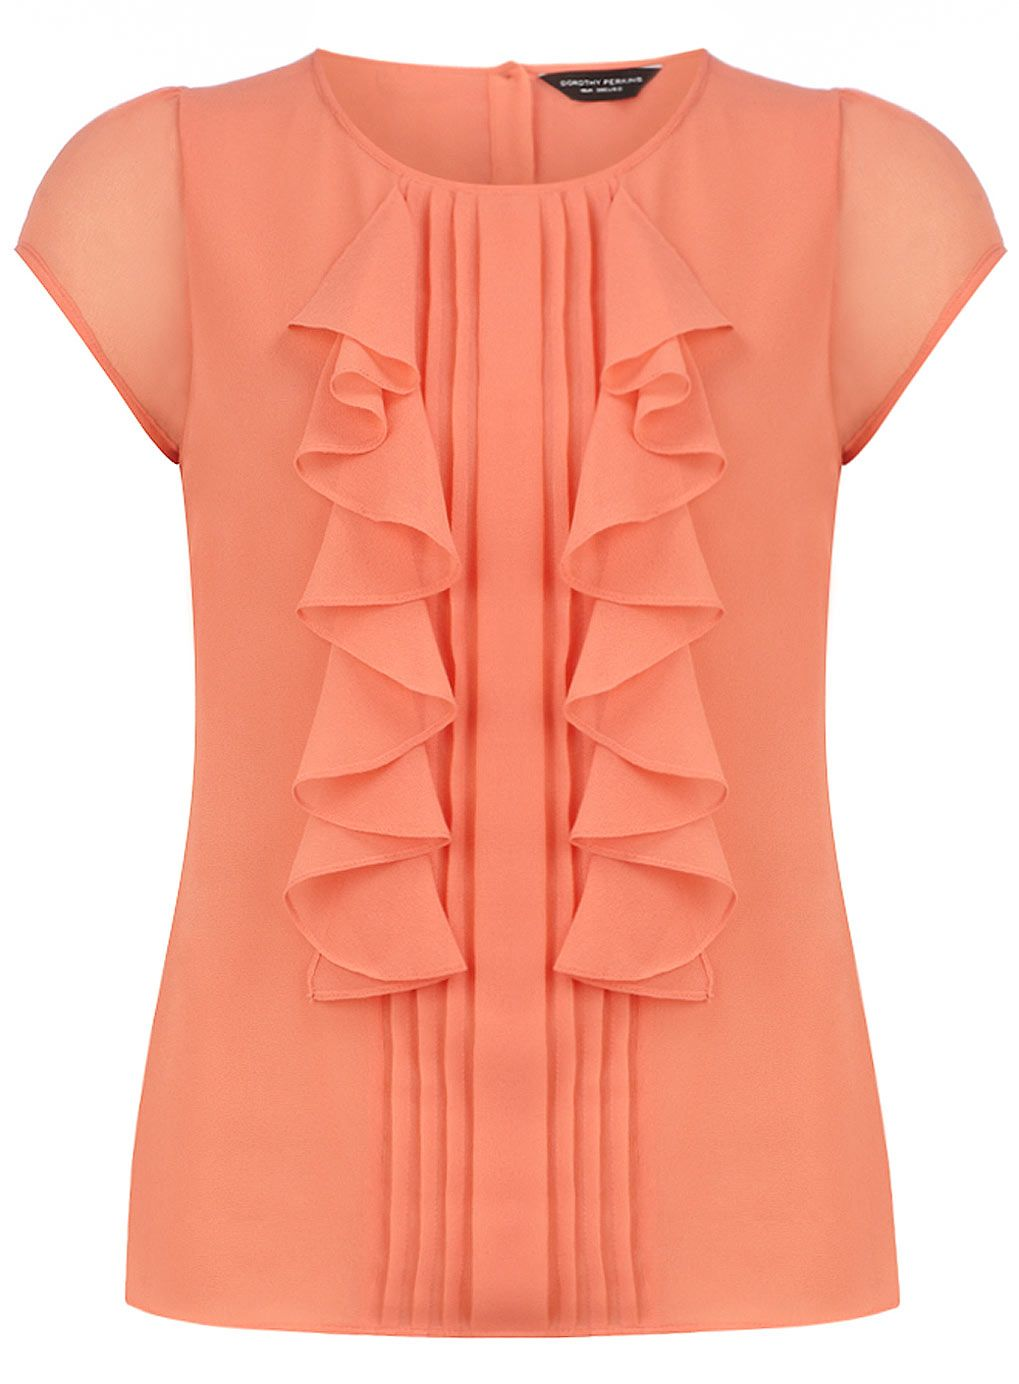 78c2417ff9e8fe Coral short sleeve frill top - Going Out Tops - Tops - Clothing - Dorothy  Perkins United States